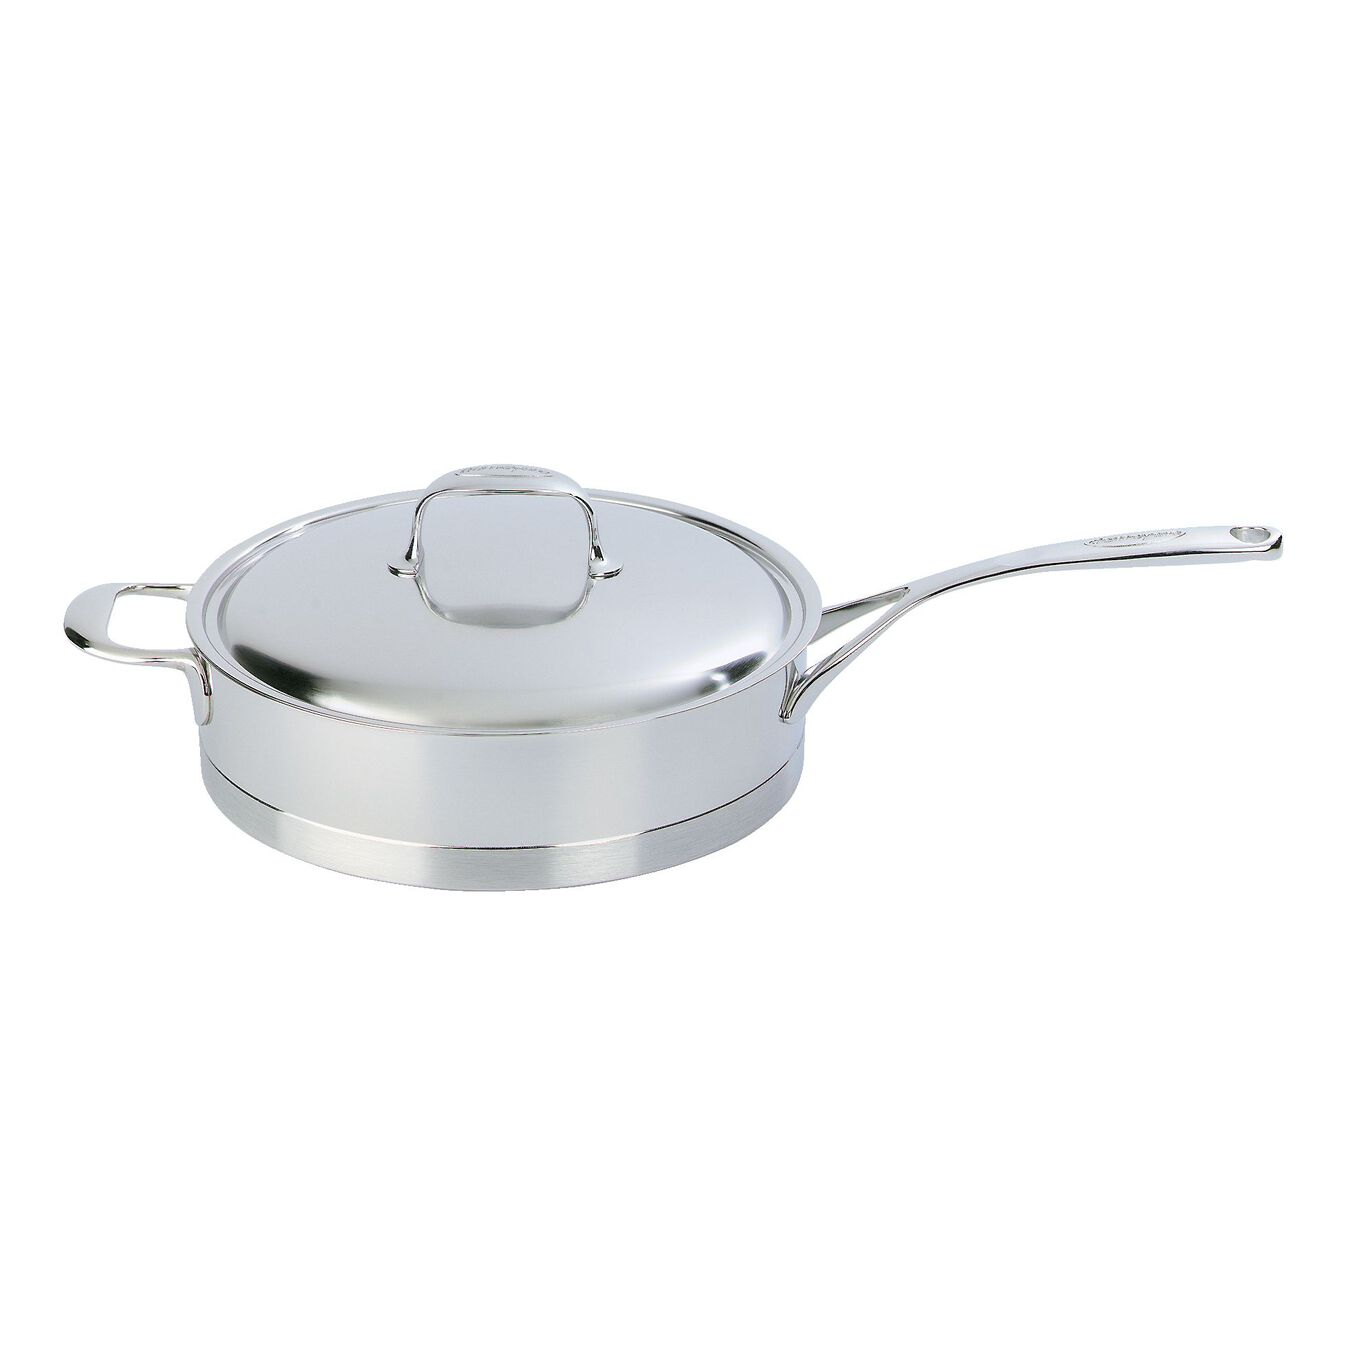 3-qt Stainless Steel Saute Pan with Helper Handle,,large 1